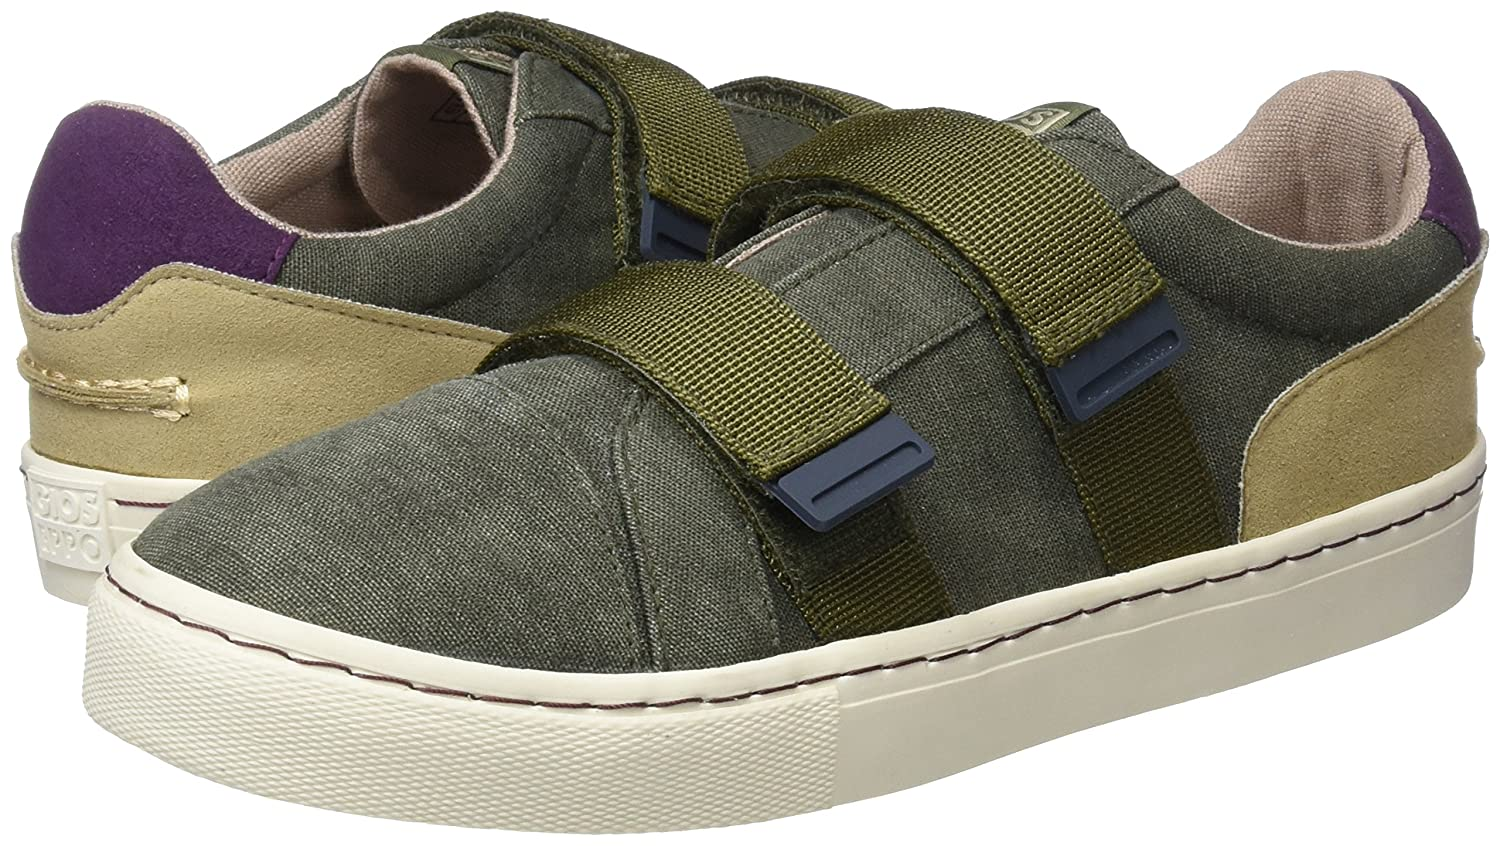 Brown Gioseppo Boys 43998 Slip on Trainers